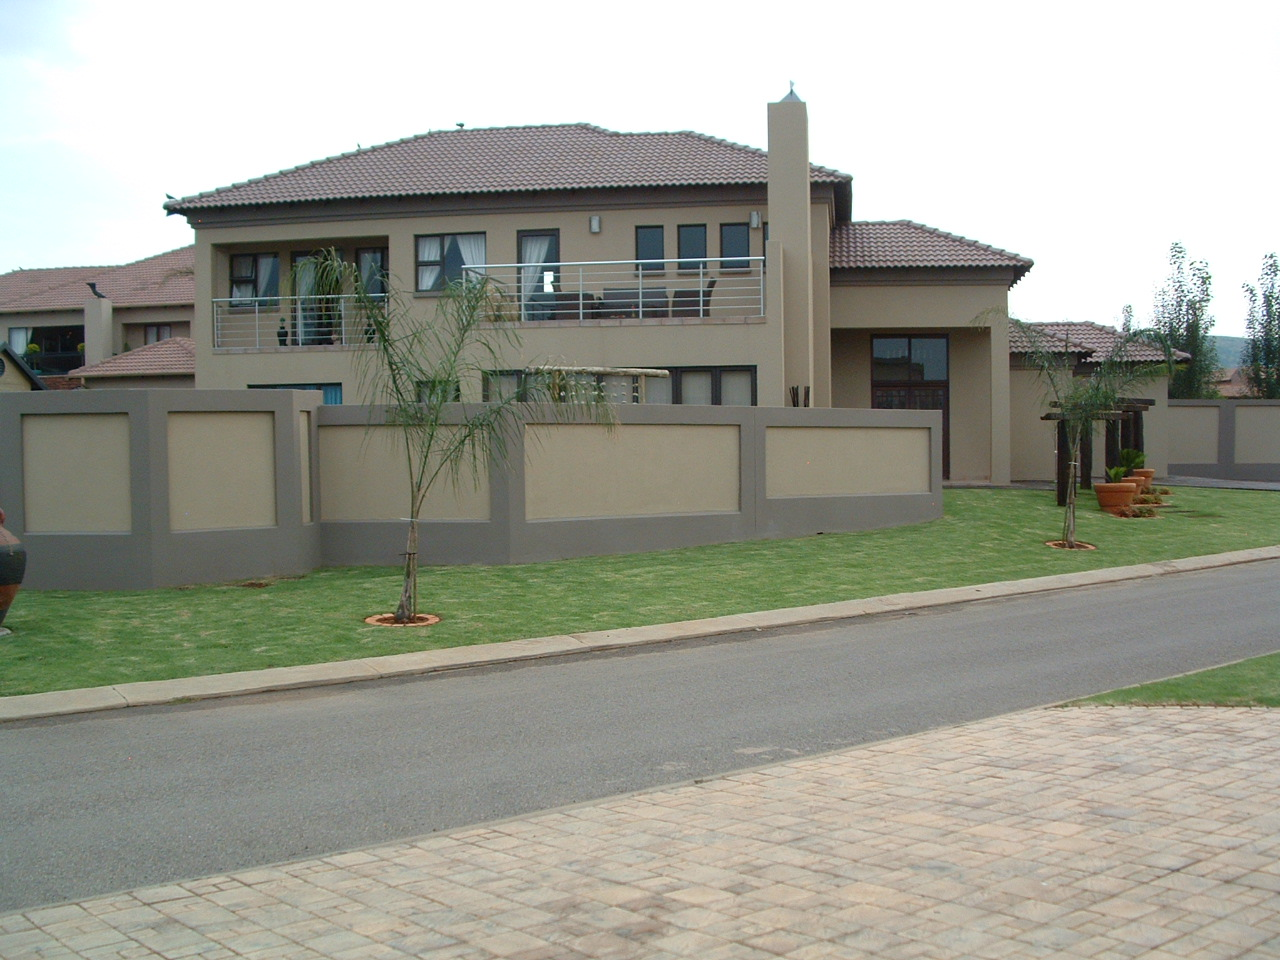 House plans pretoria 12b a con designs architects for Houses plans and pictures